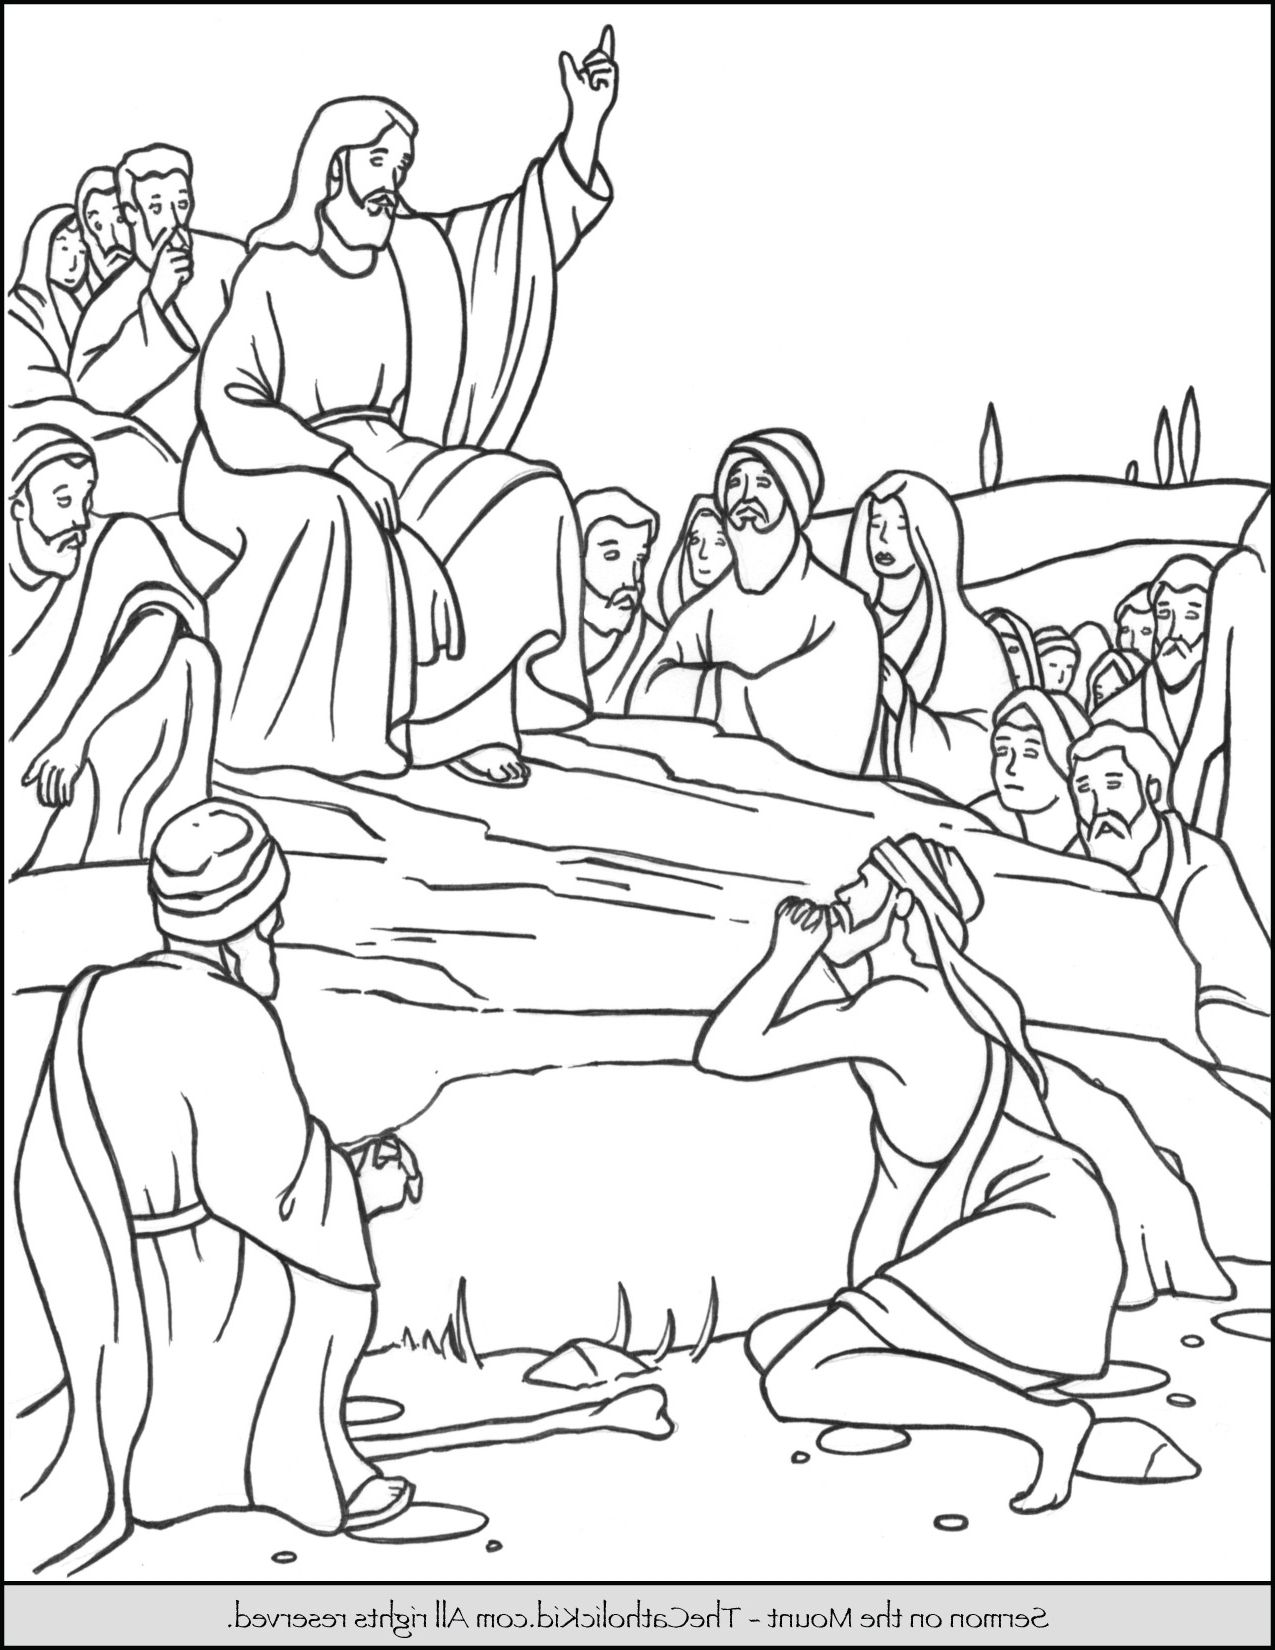 Sermon on the mount coloring page